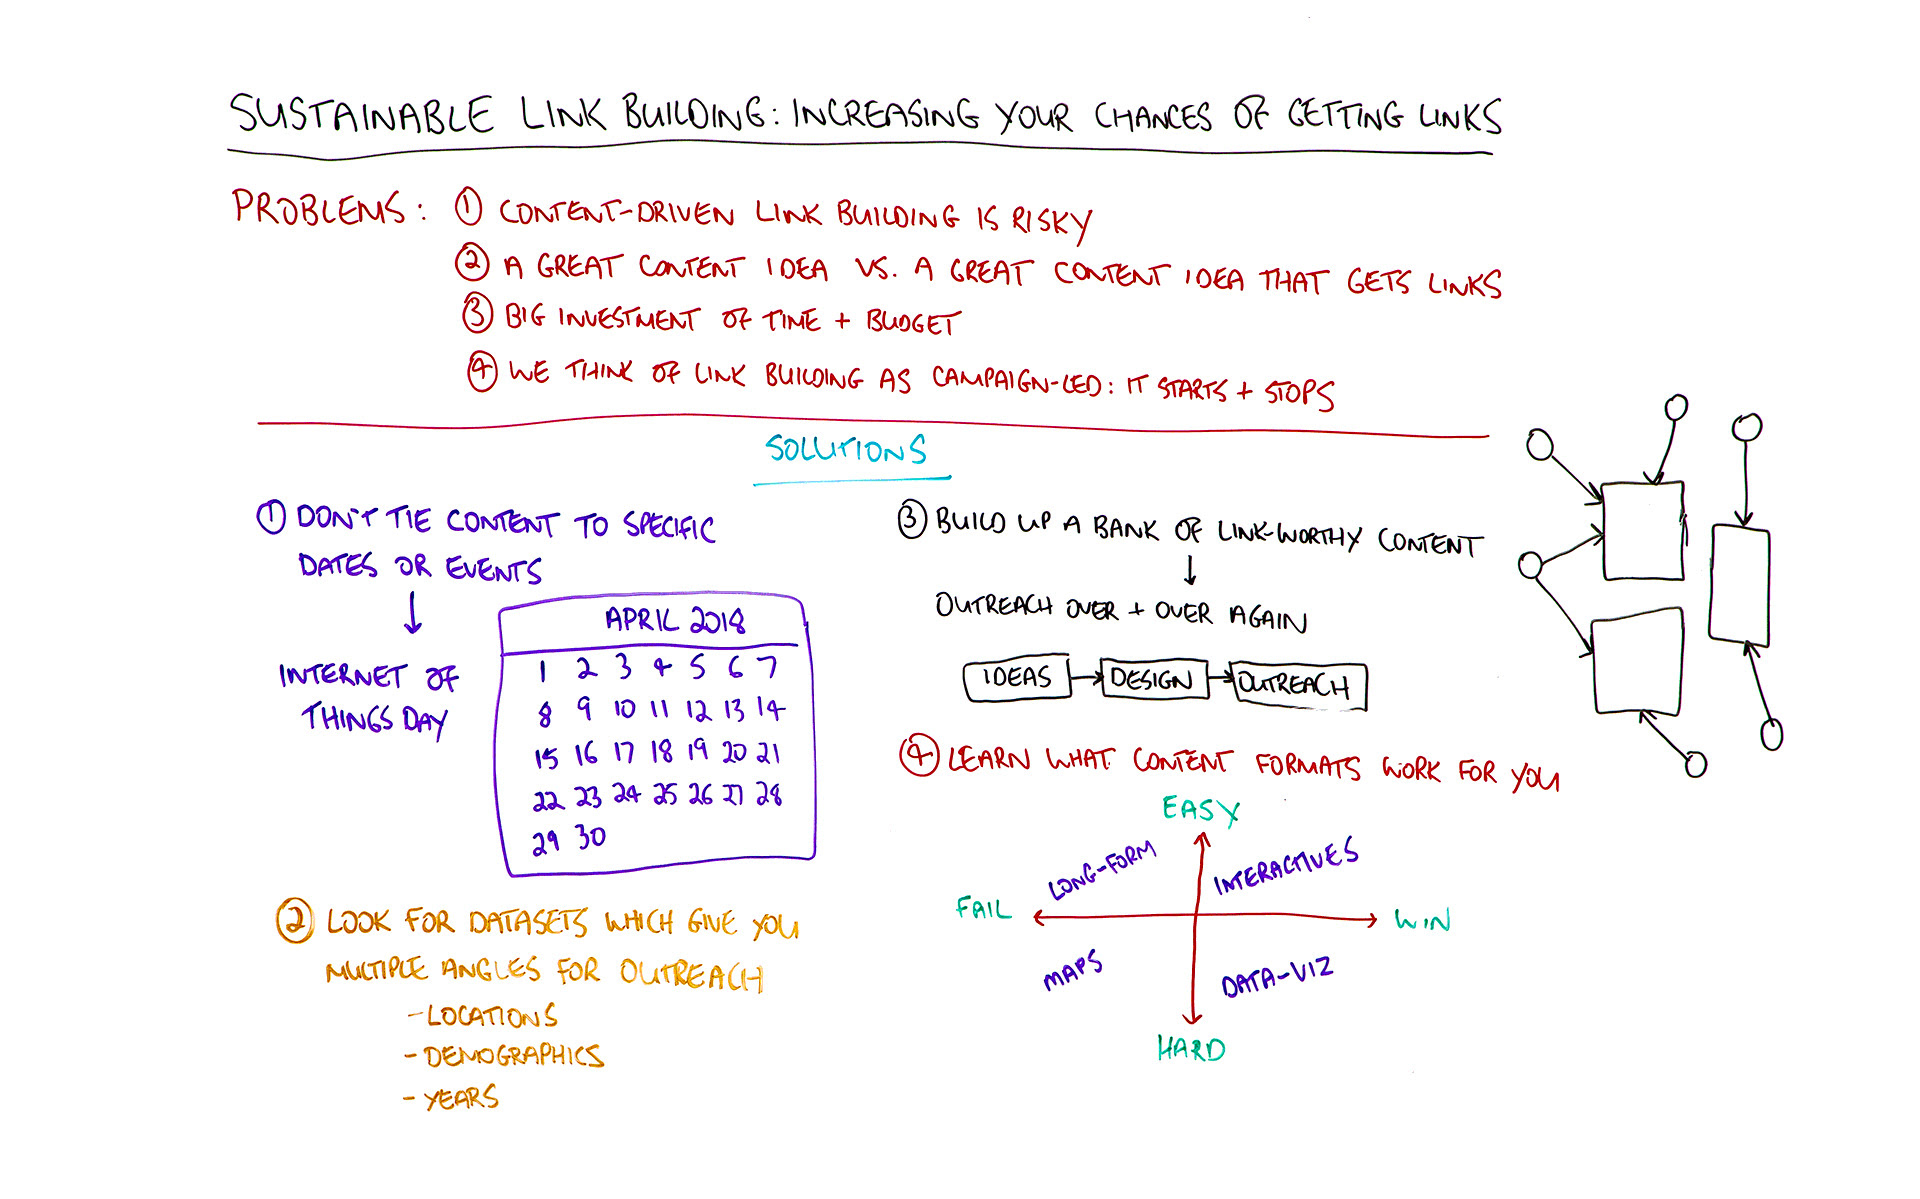 Sustainable Link Building: Increasing Your Chances of Getting Links